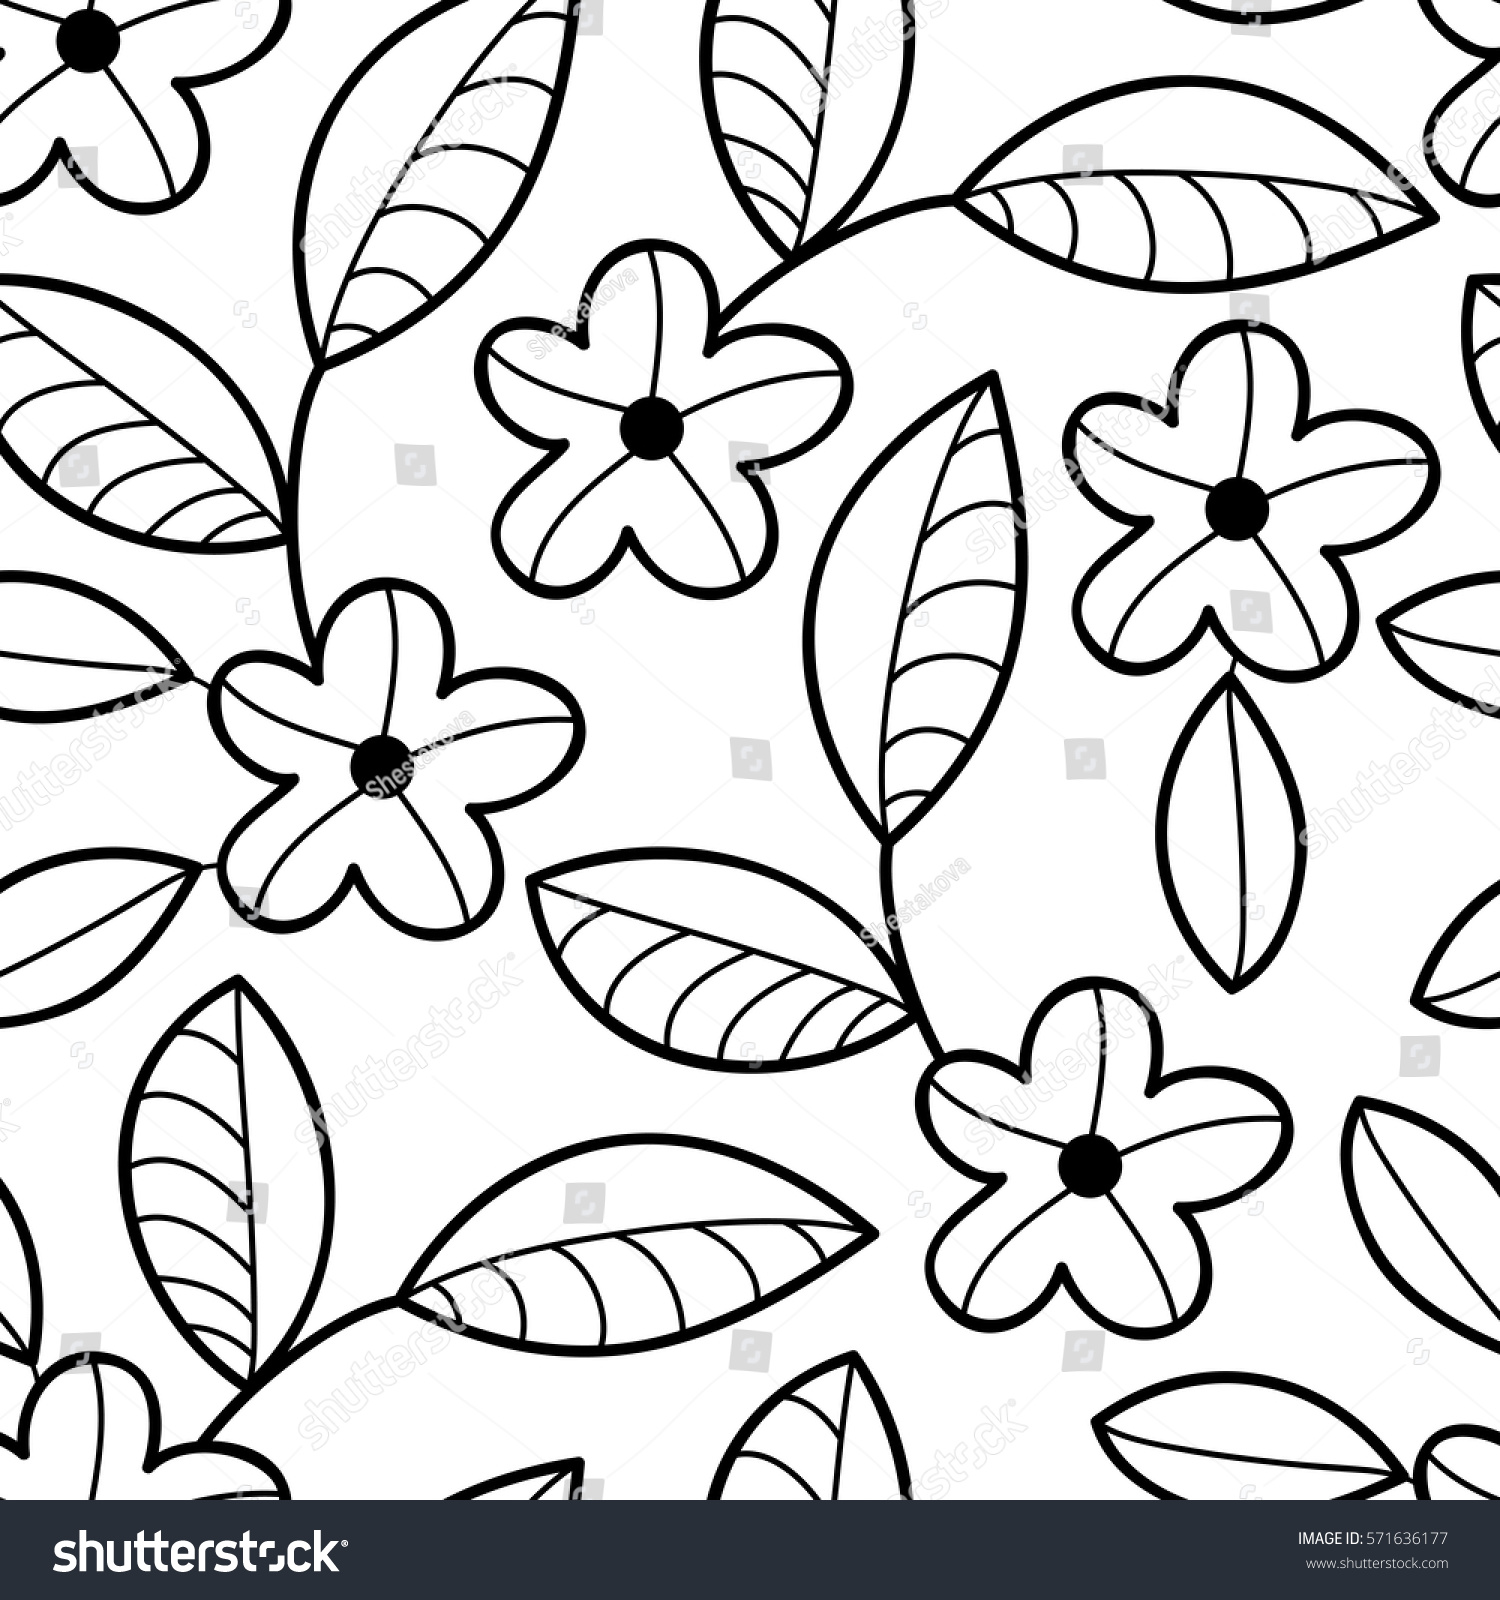 Vector Black White Flower Seamless Pattern Stock Vector Royalty